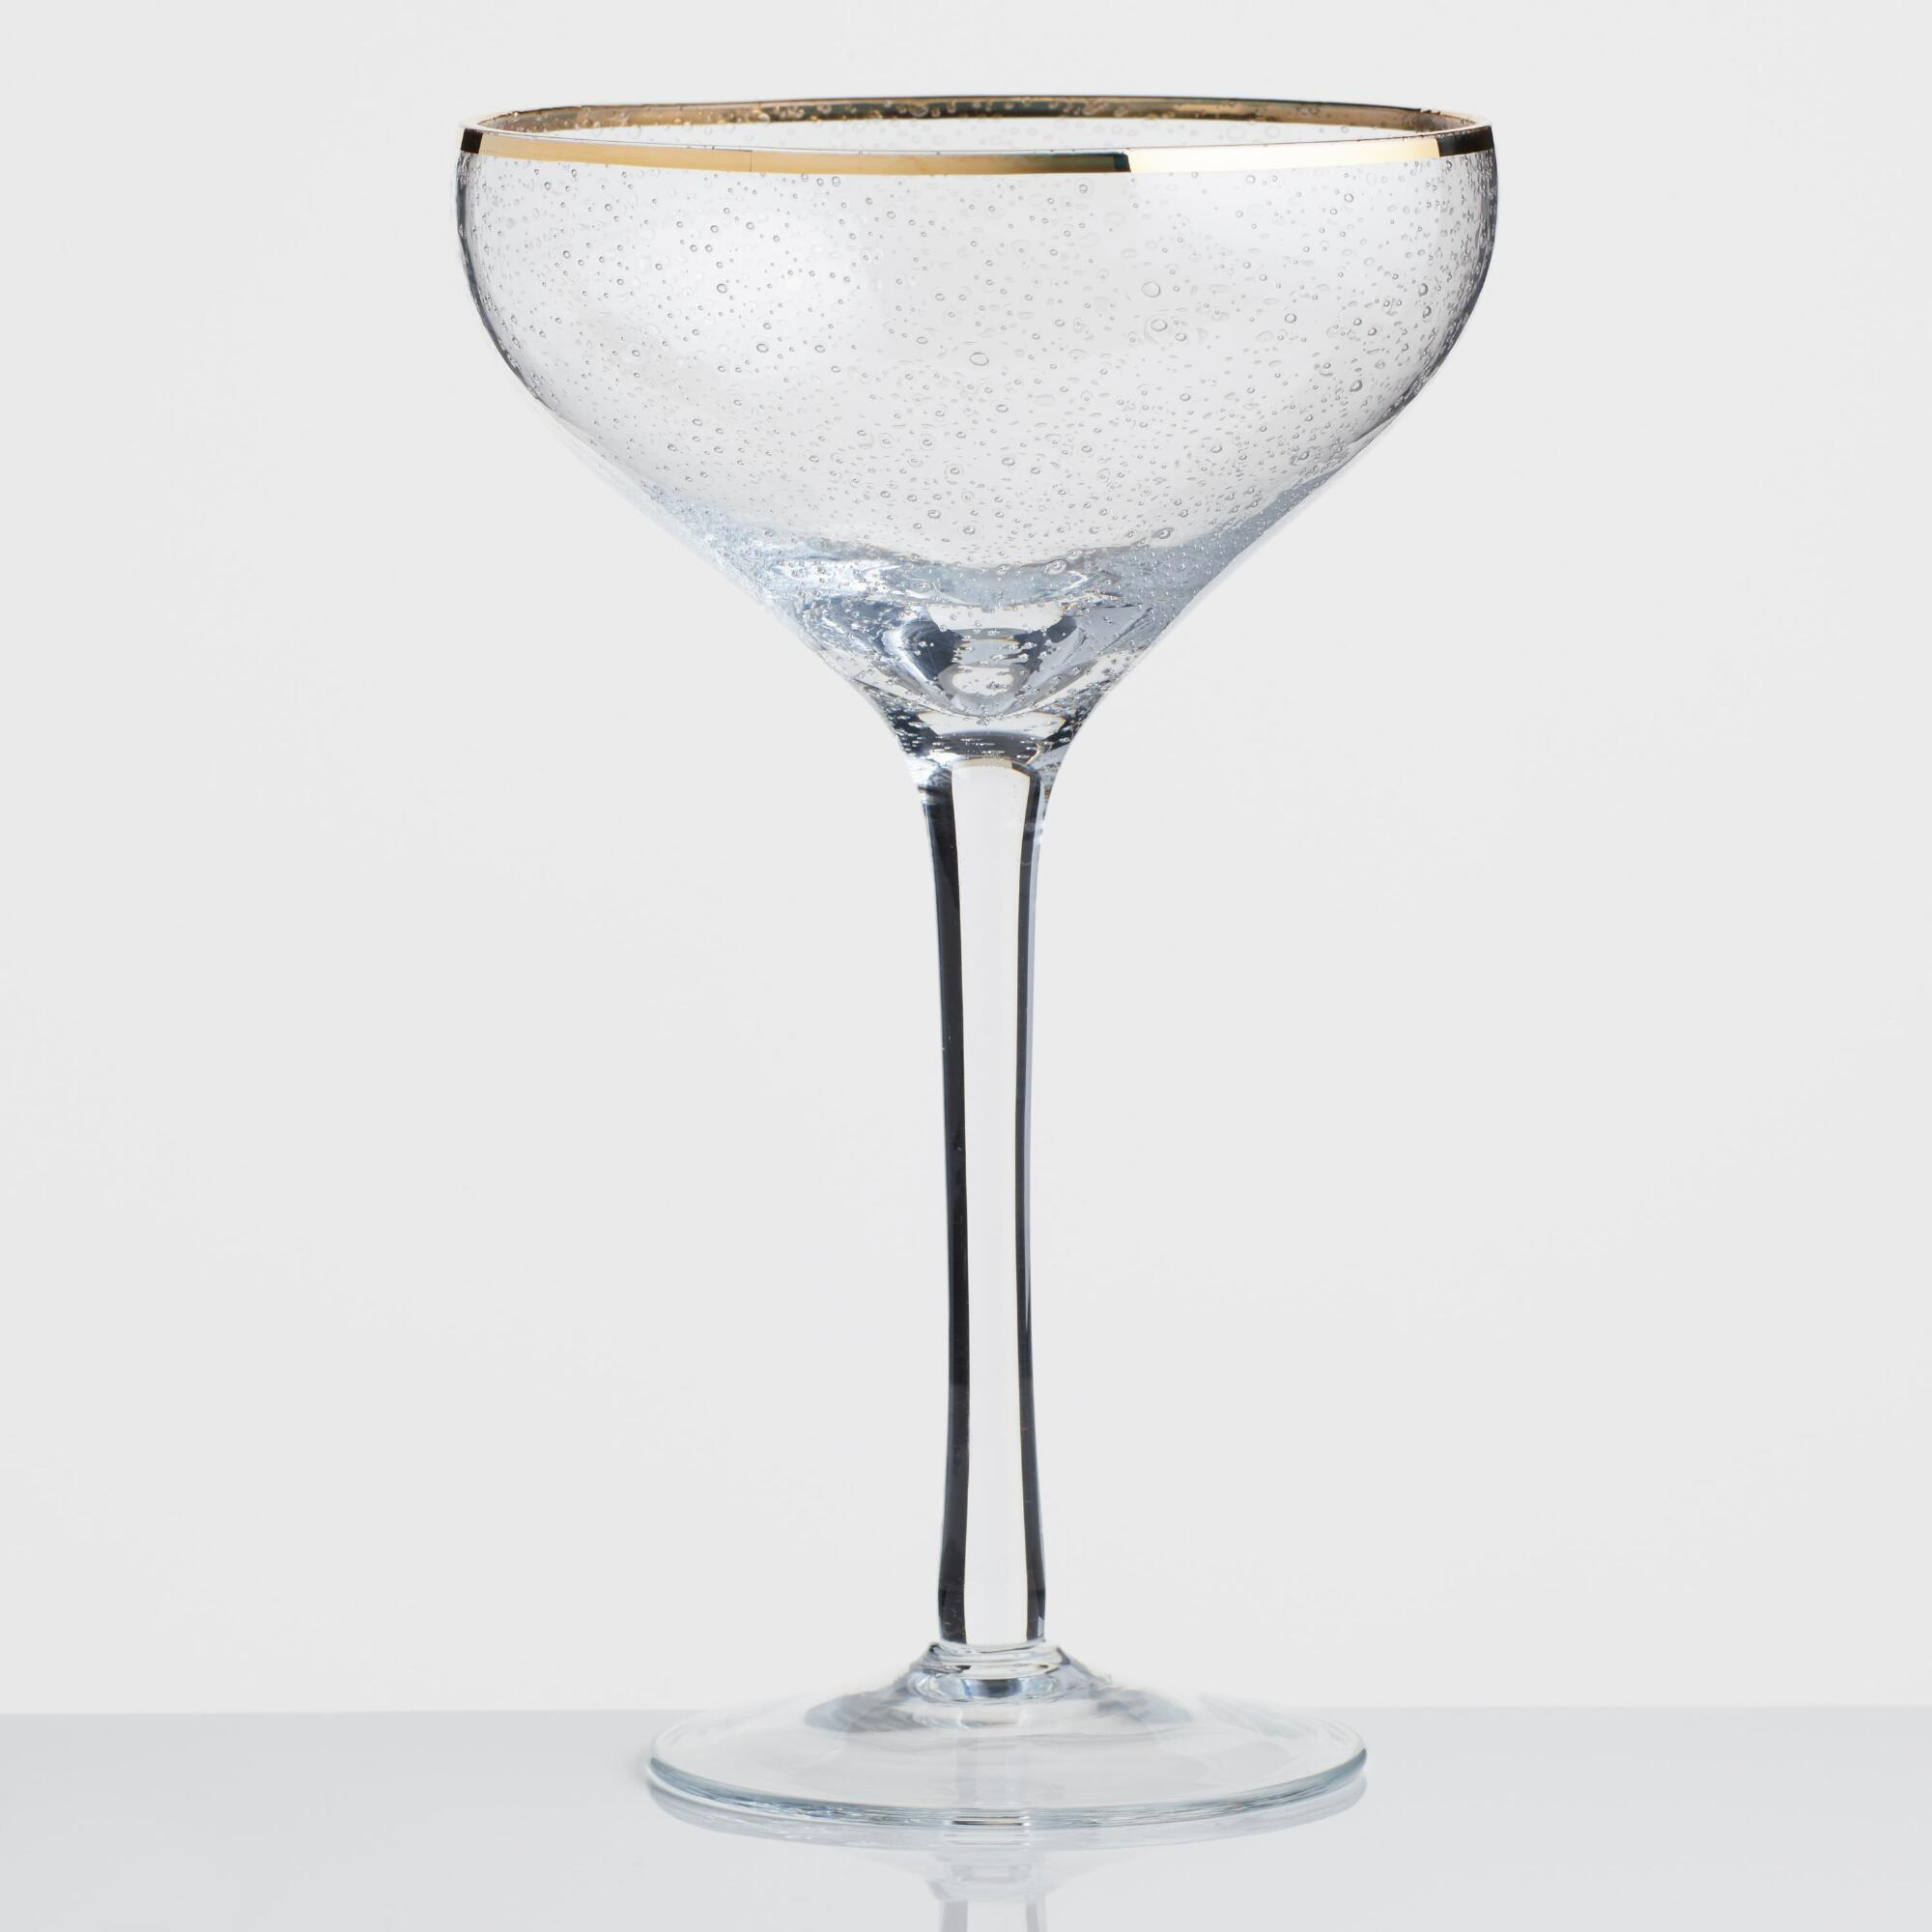 Gold Rimmed Bubble Glass Coupe Glasses Set of 4 by World Market